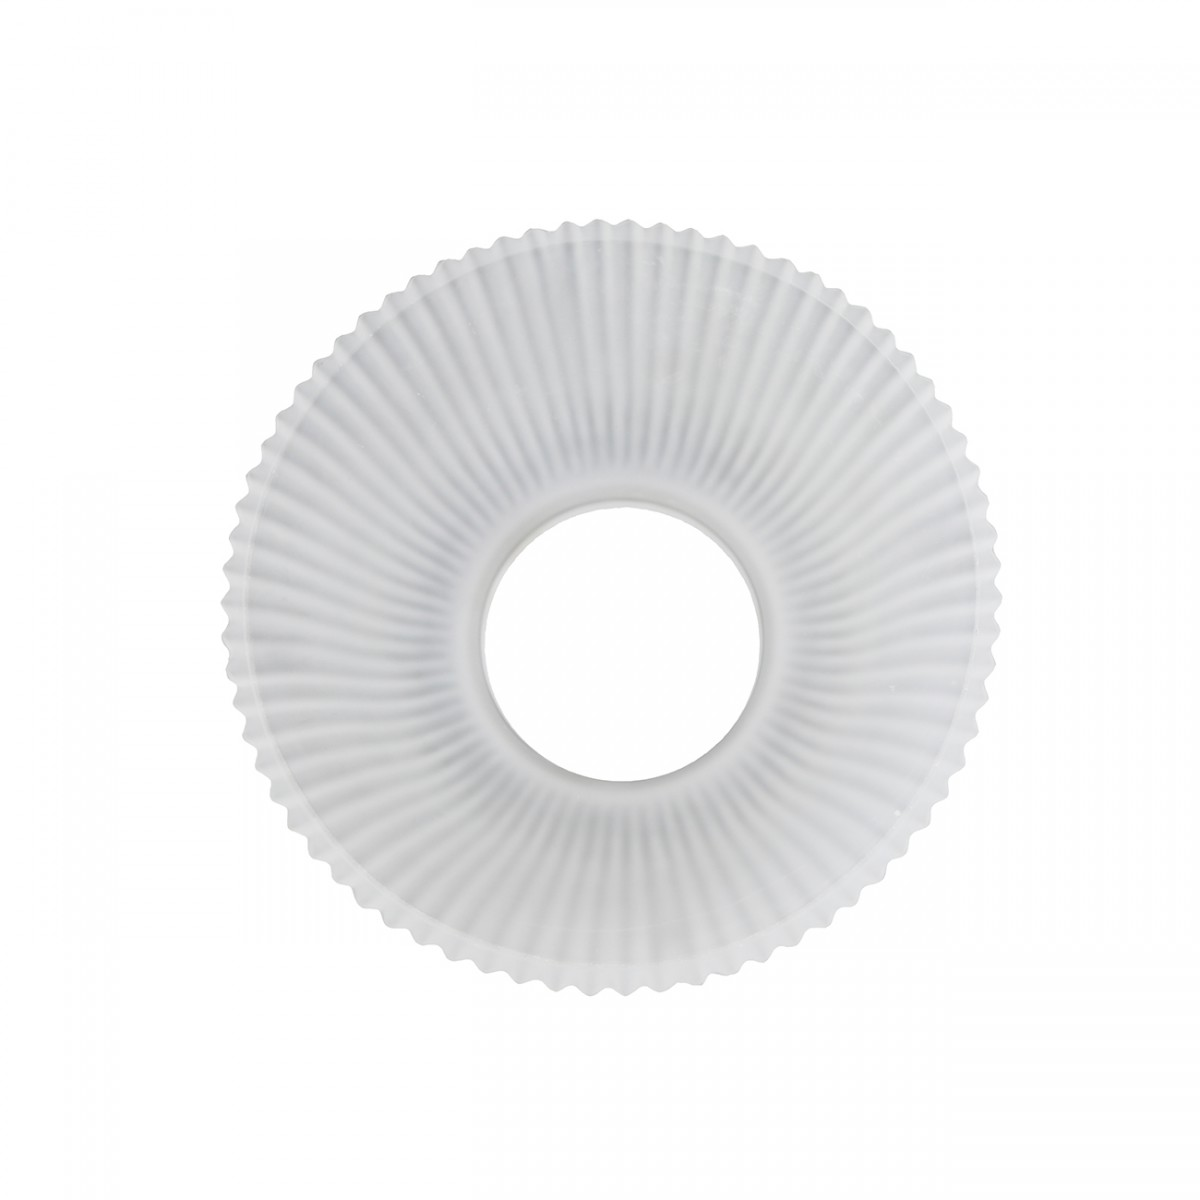 2 Lamp Shade White Glass Traditional 3 58 H x 4 Fitter Lamp Shades White Lamp Shade Glass Lamp Shade